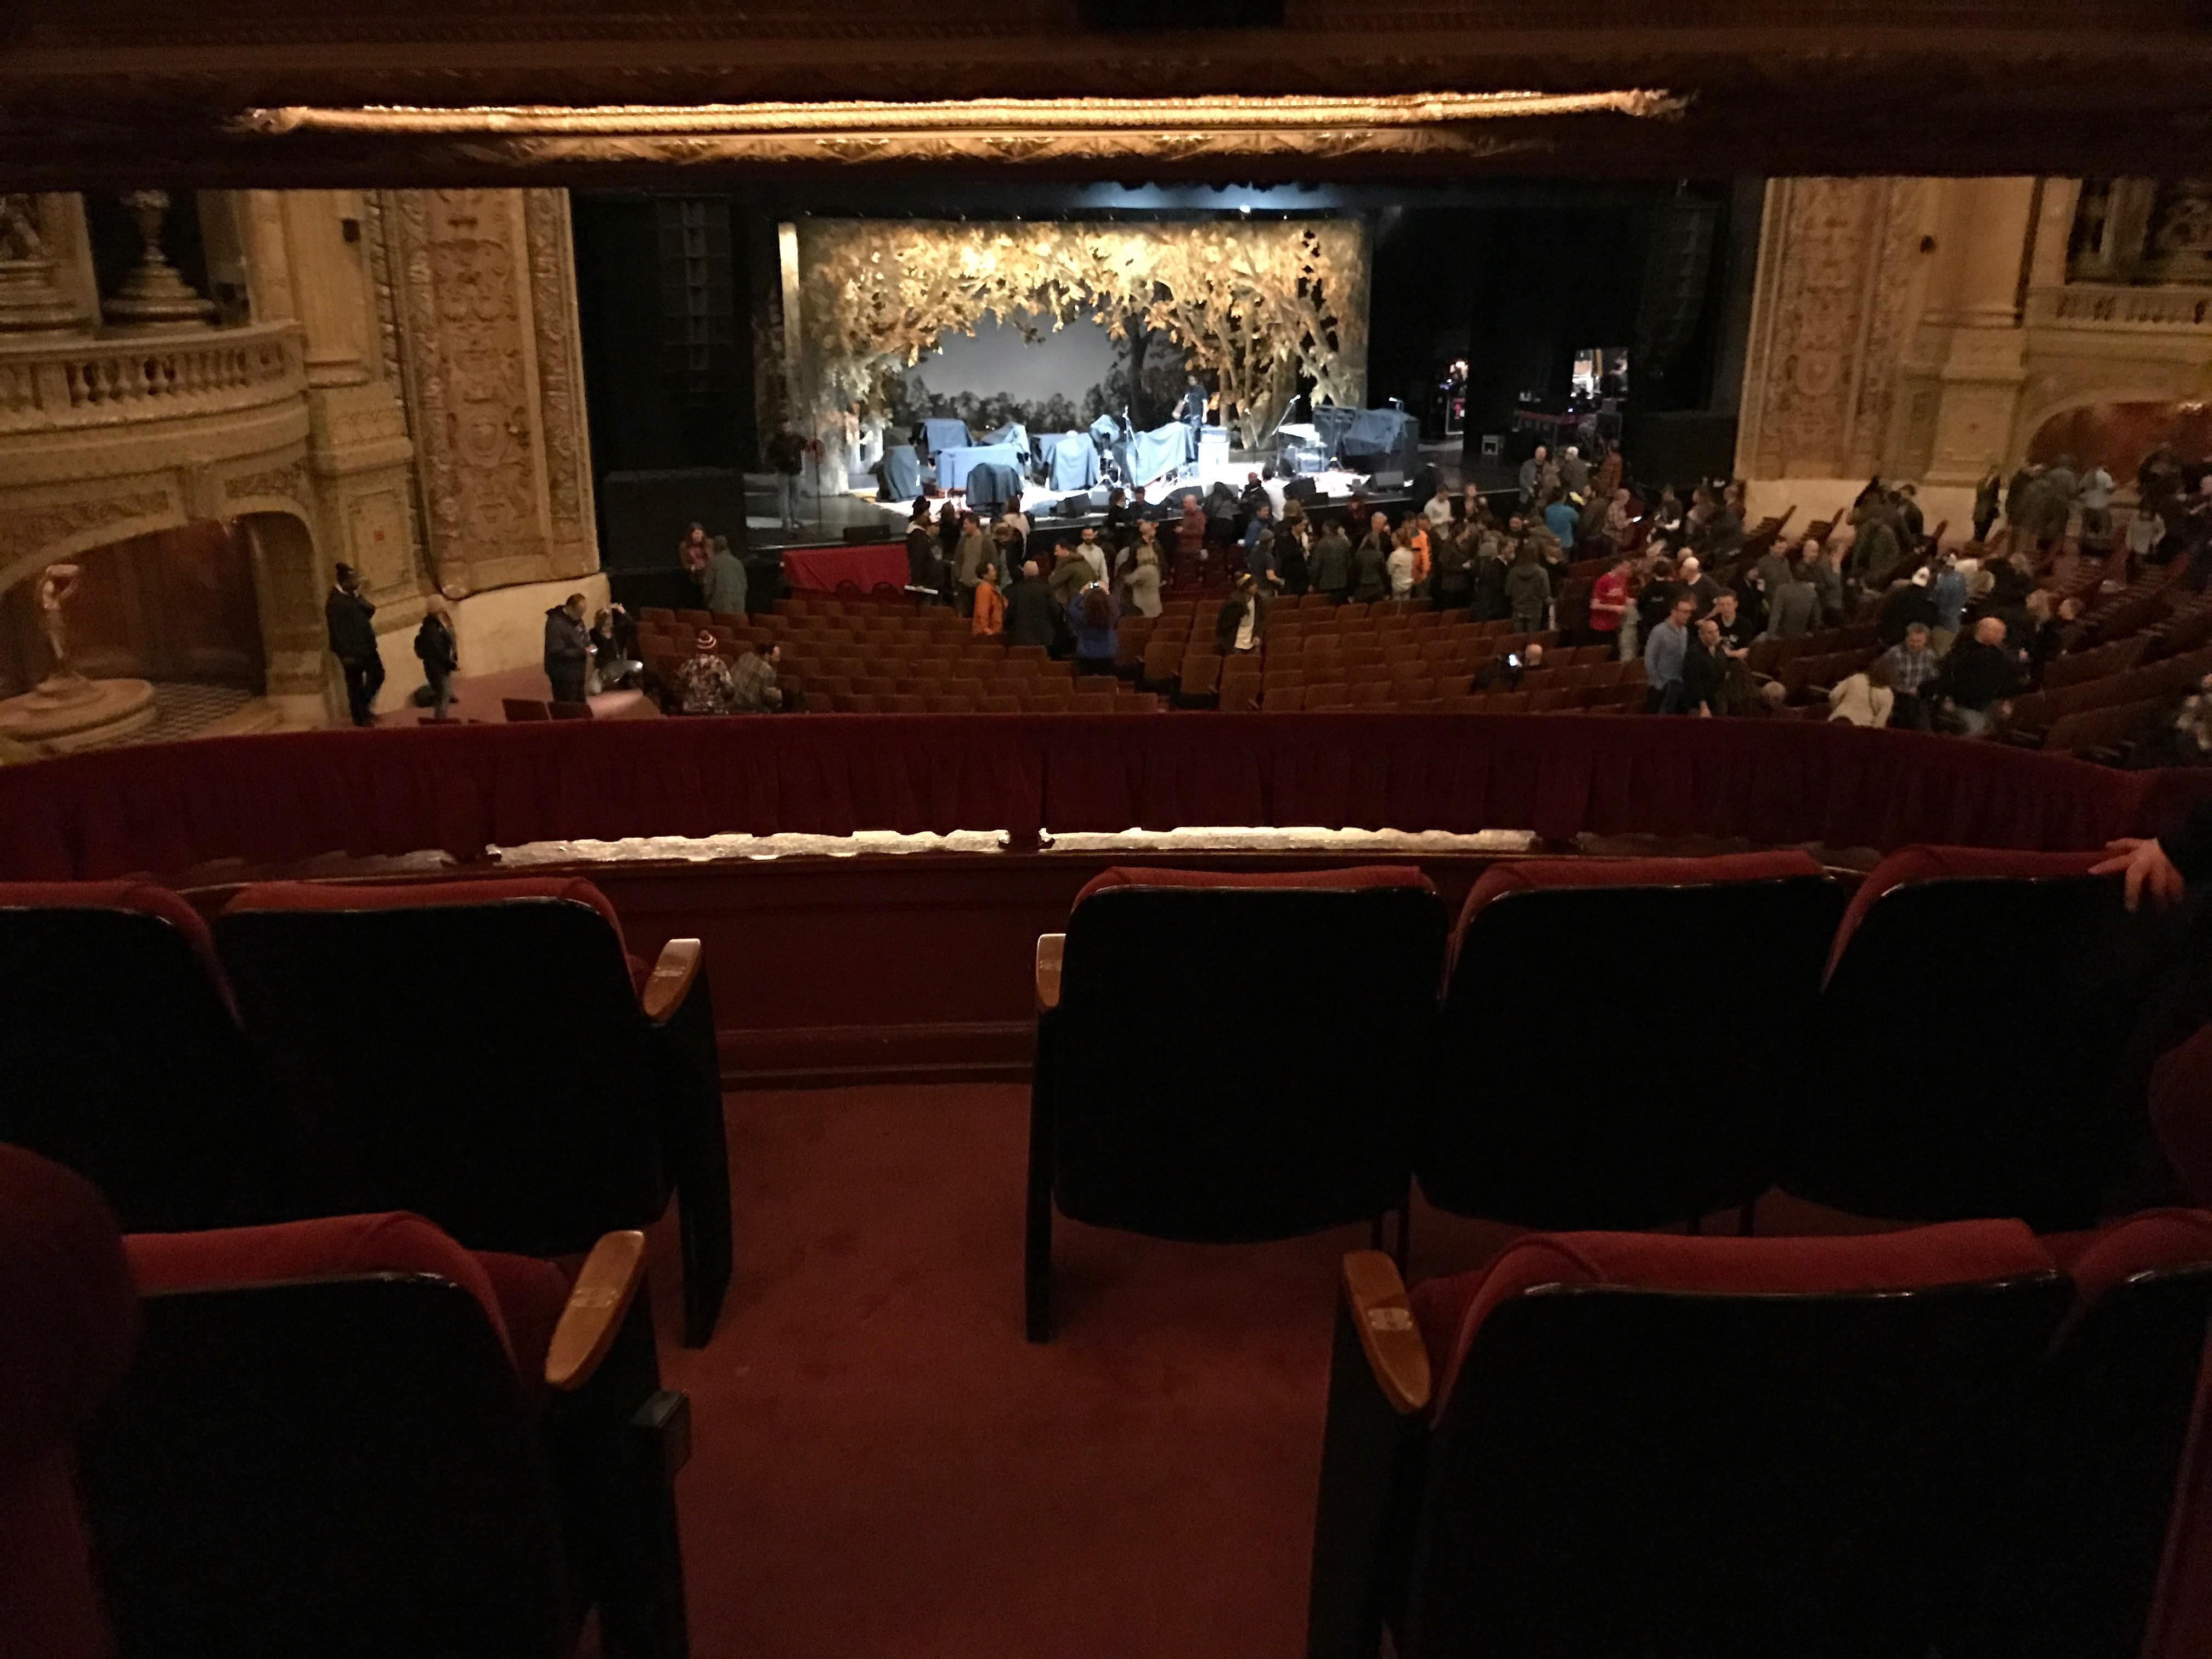 Chicago Theatre Section BOX Row S Seat 1